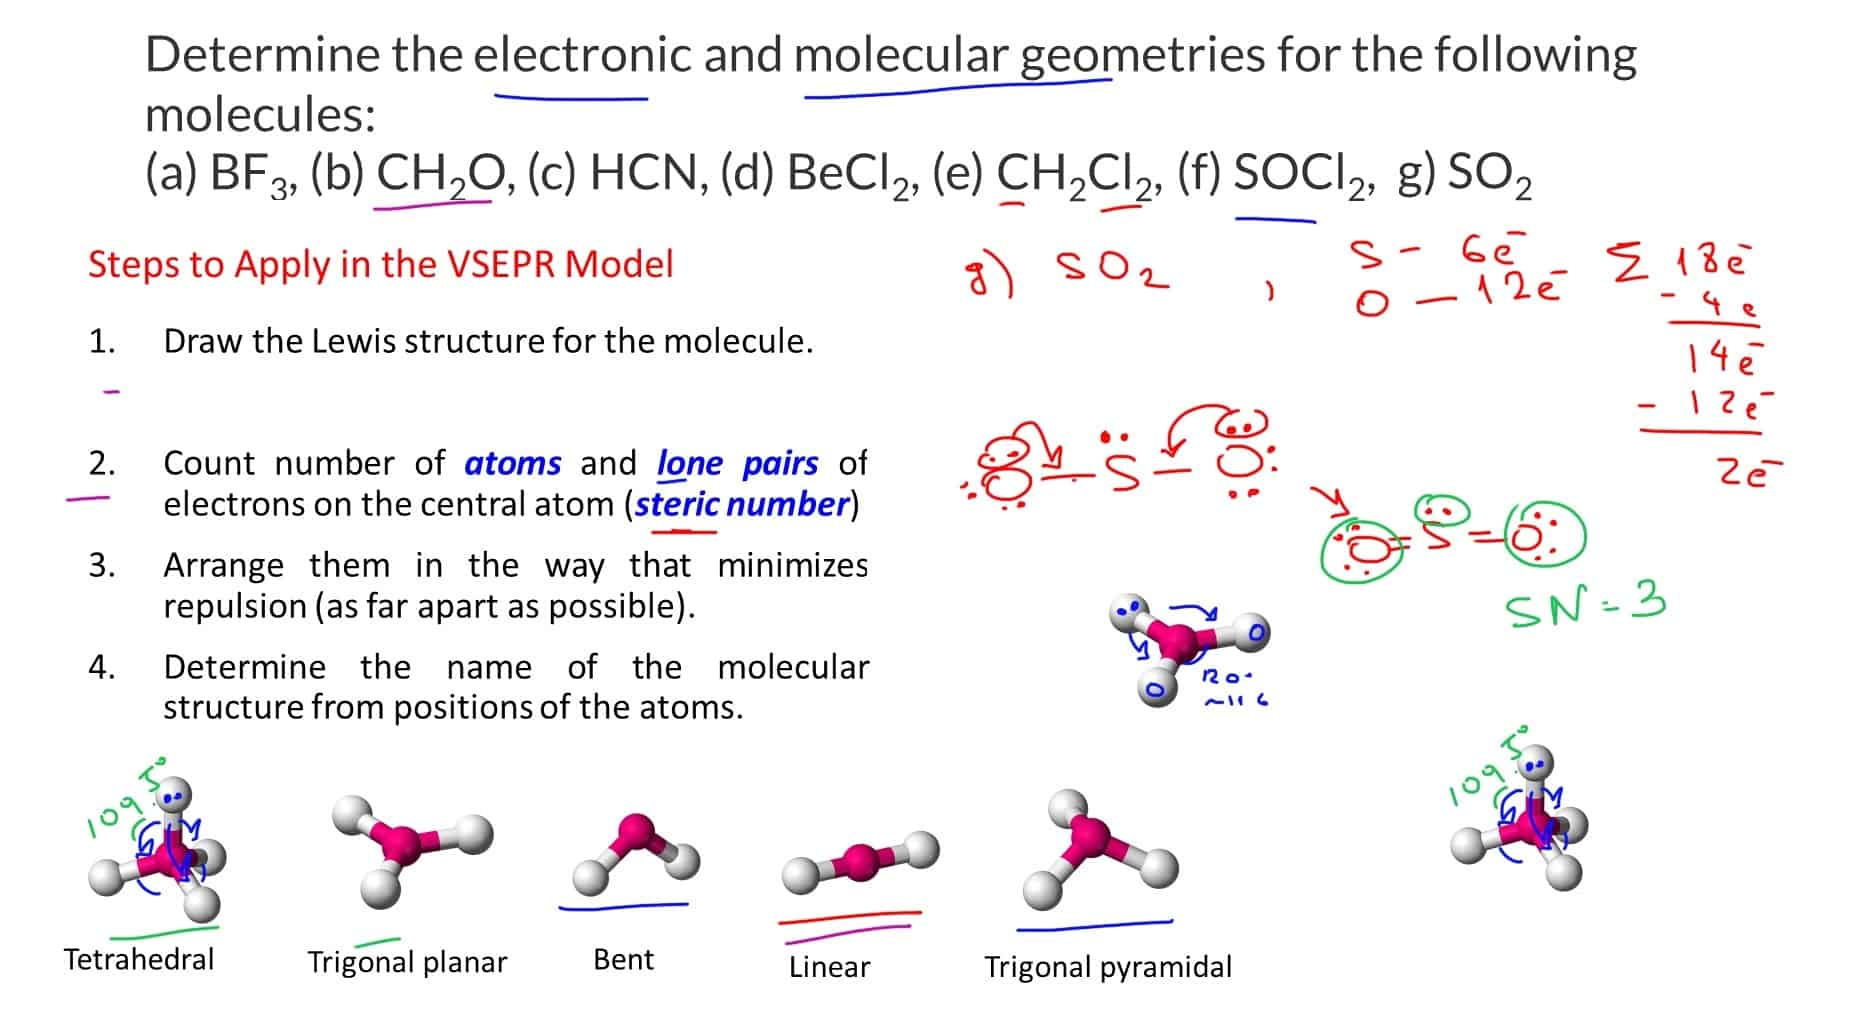 hight resolution of draw the lewis structures and determine the electronic and molecular geometries for the following molecules a bf3 b ch2o c hcn d becl2